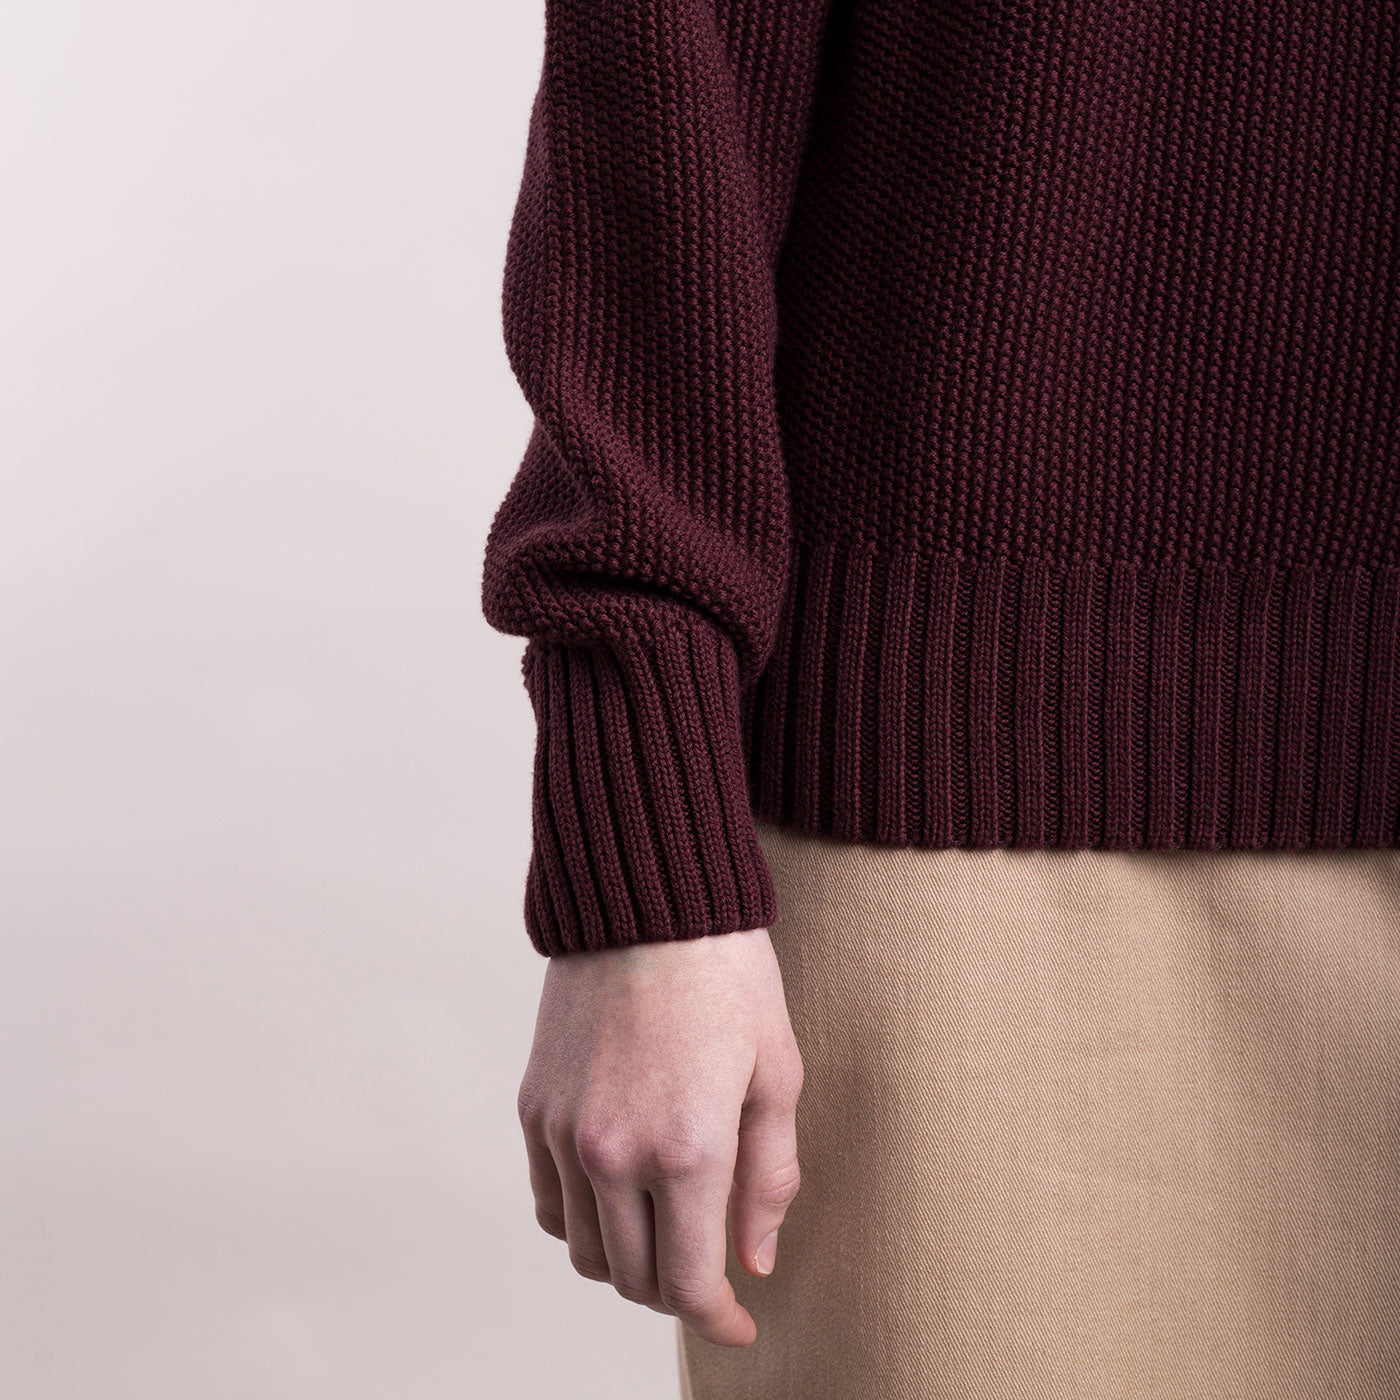 The model wears a burgundy sustainable organic cotton knitted fine rice pullover, detail of the sleeve..